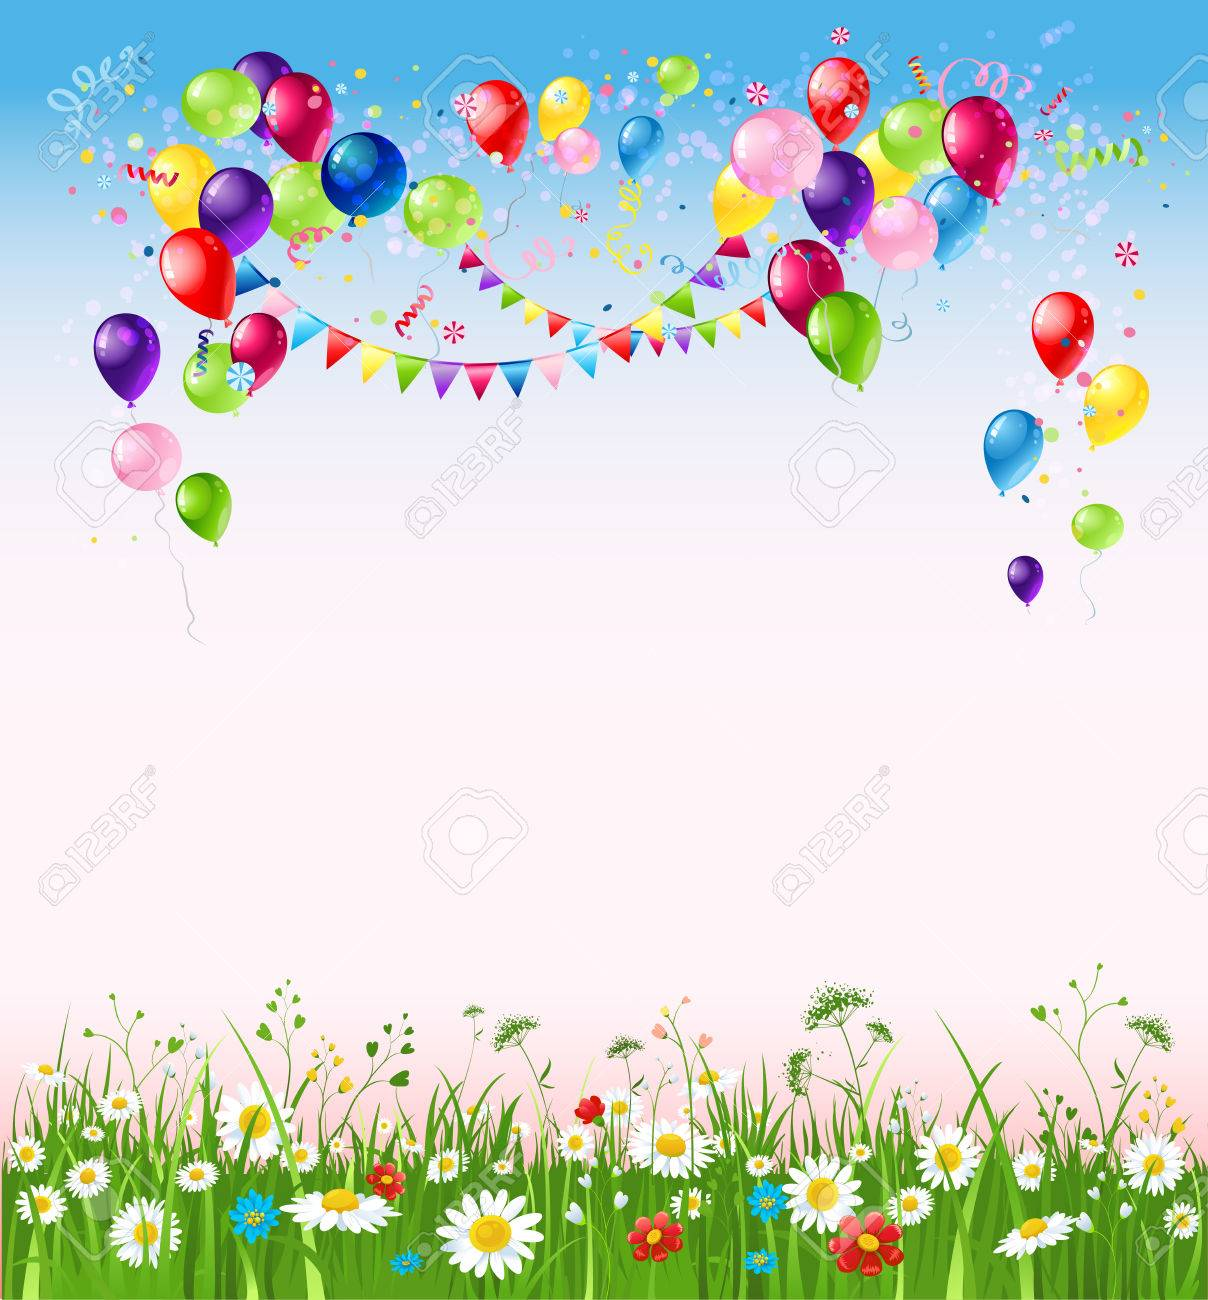 birthday poster background ; 79864858-holiday-template-for-design-banner-ticket-leaflet-card-poster-and-so-on-happy-birthday-background-an